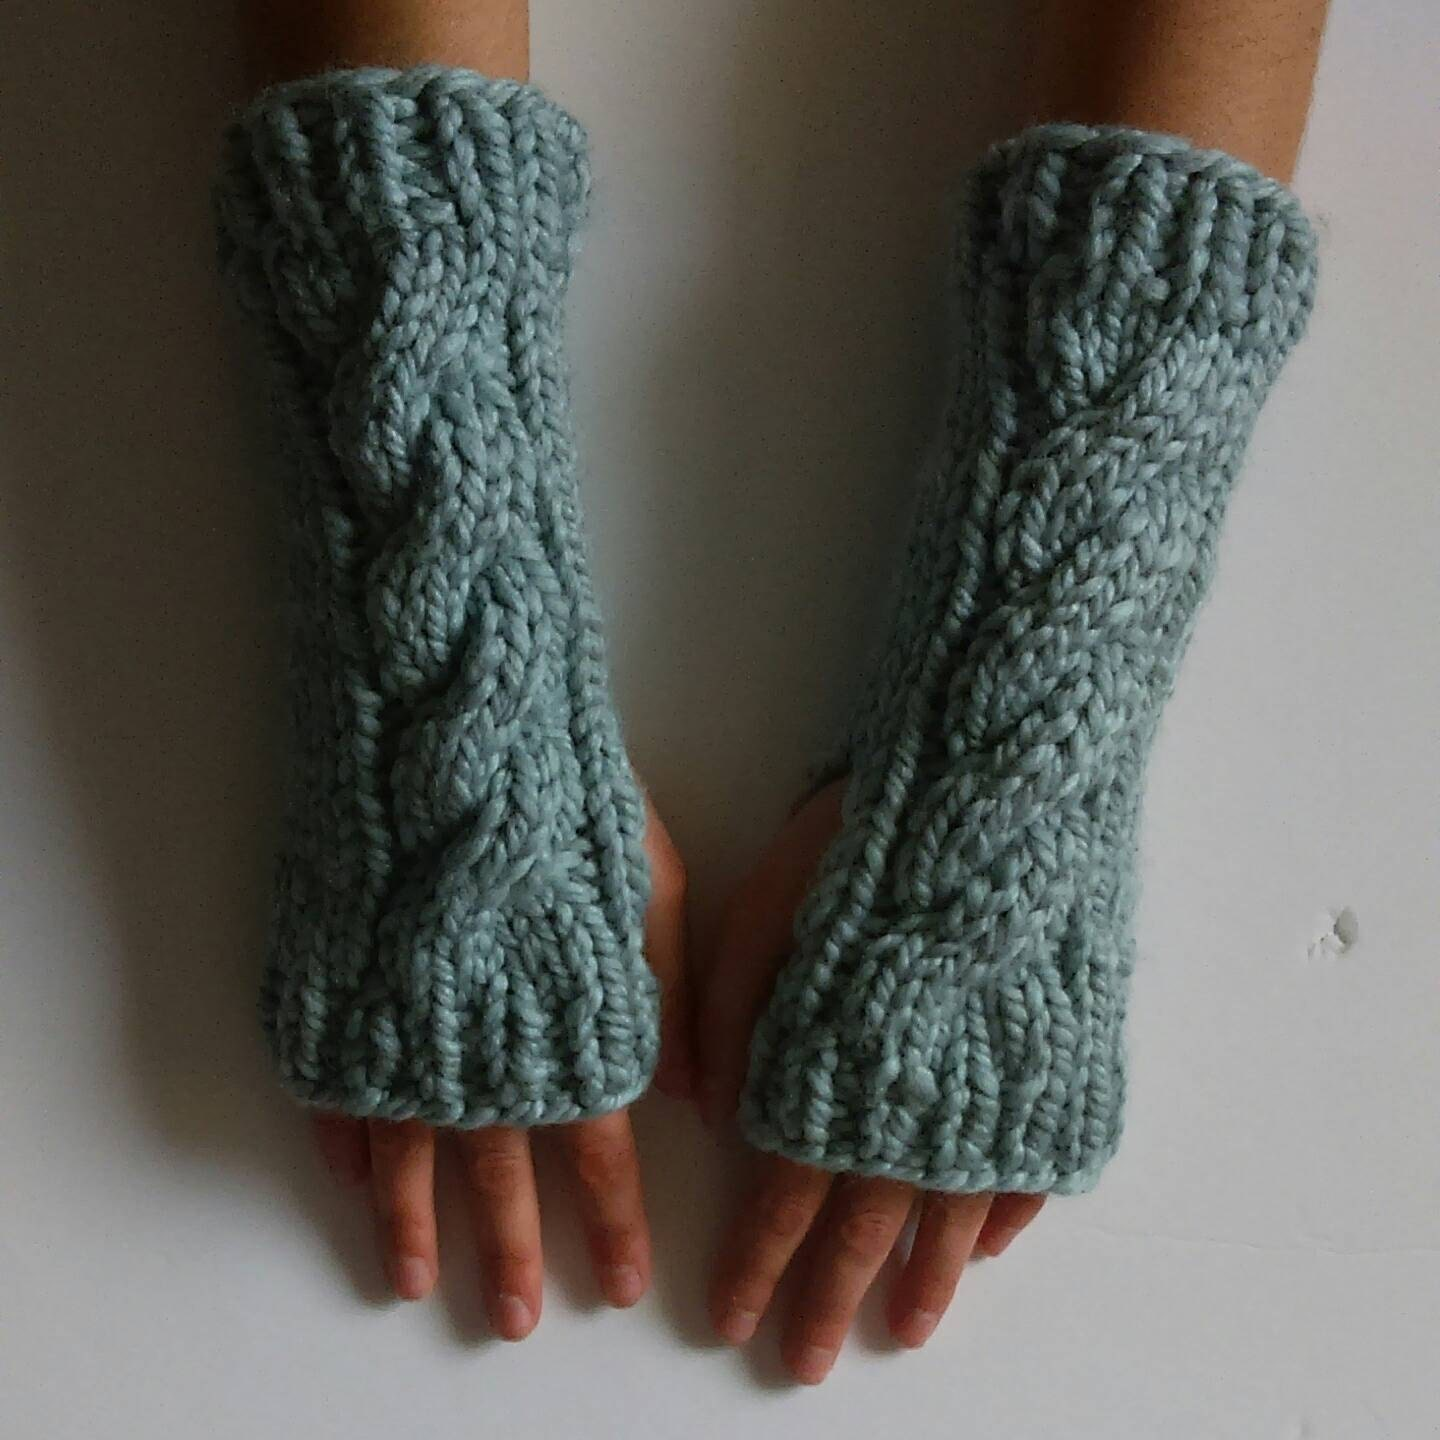 Knitting Pattern For Texting Mittens : Fingerless Cable Knitted Mittens Texting Mittens by GoGidgetGo